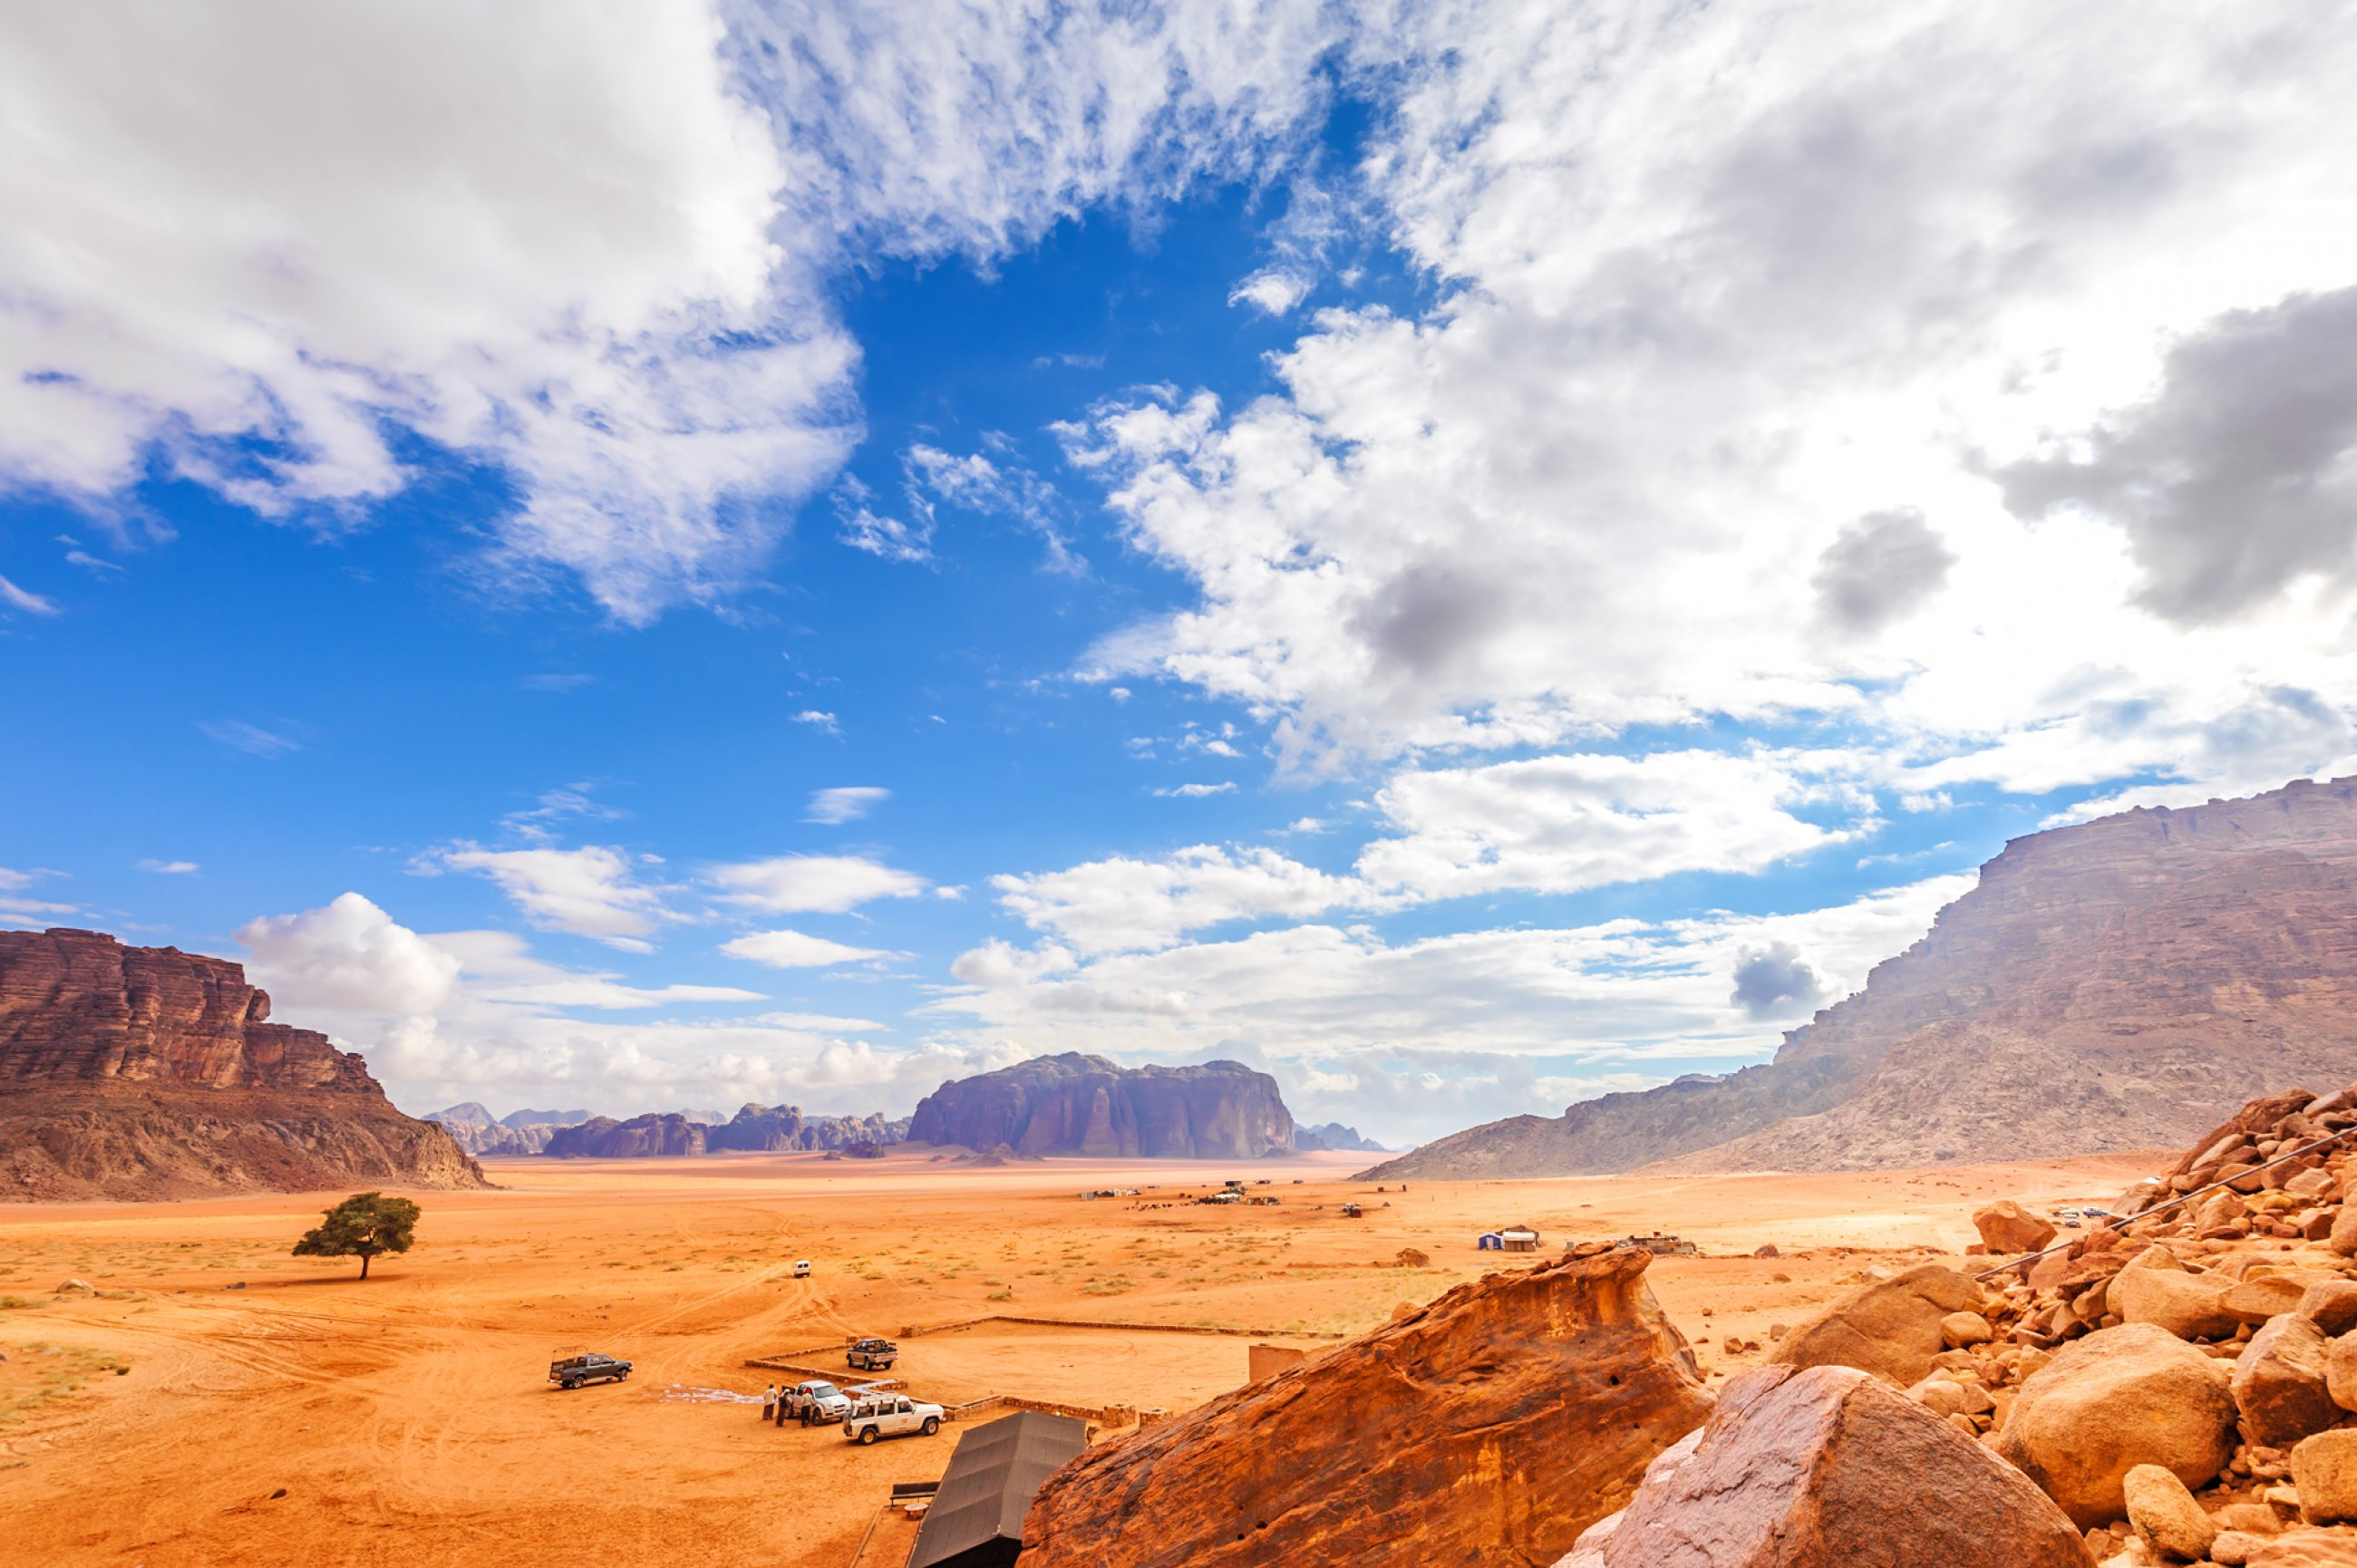 https://bubo.sk/uploads/galleries/7386/jordansko-jazda-udolim-wadi-rum..jpg